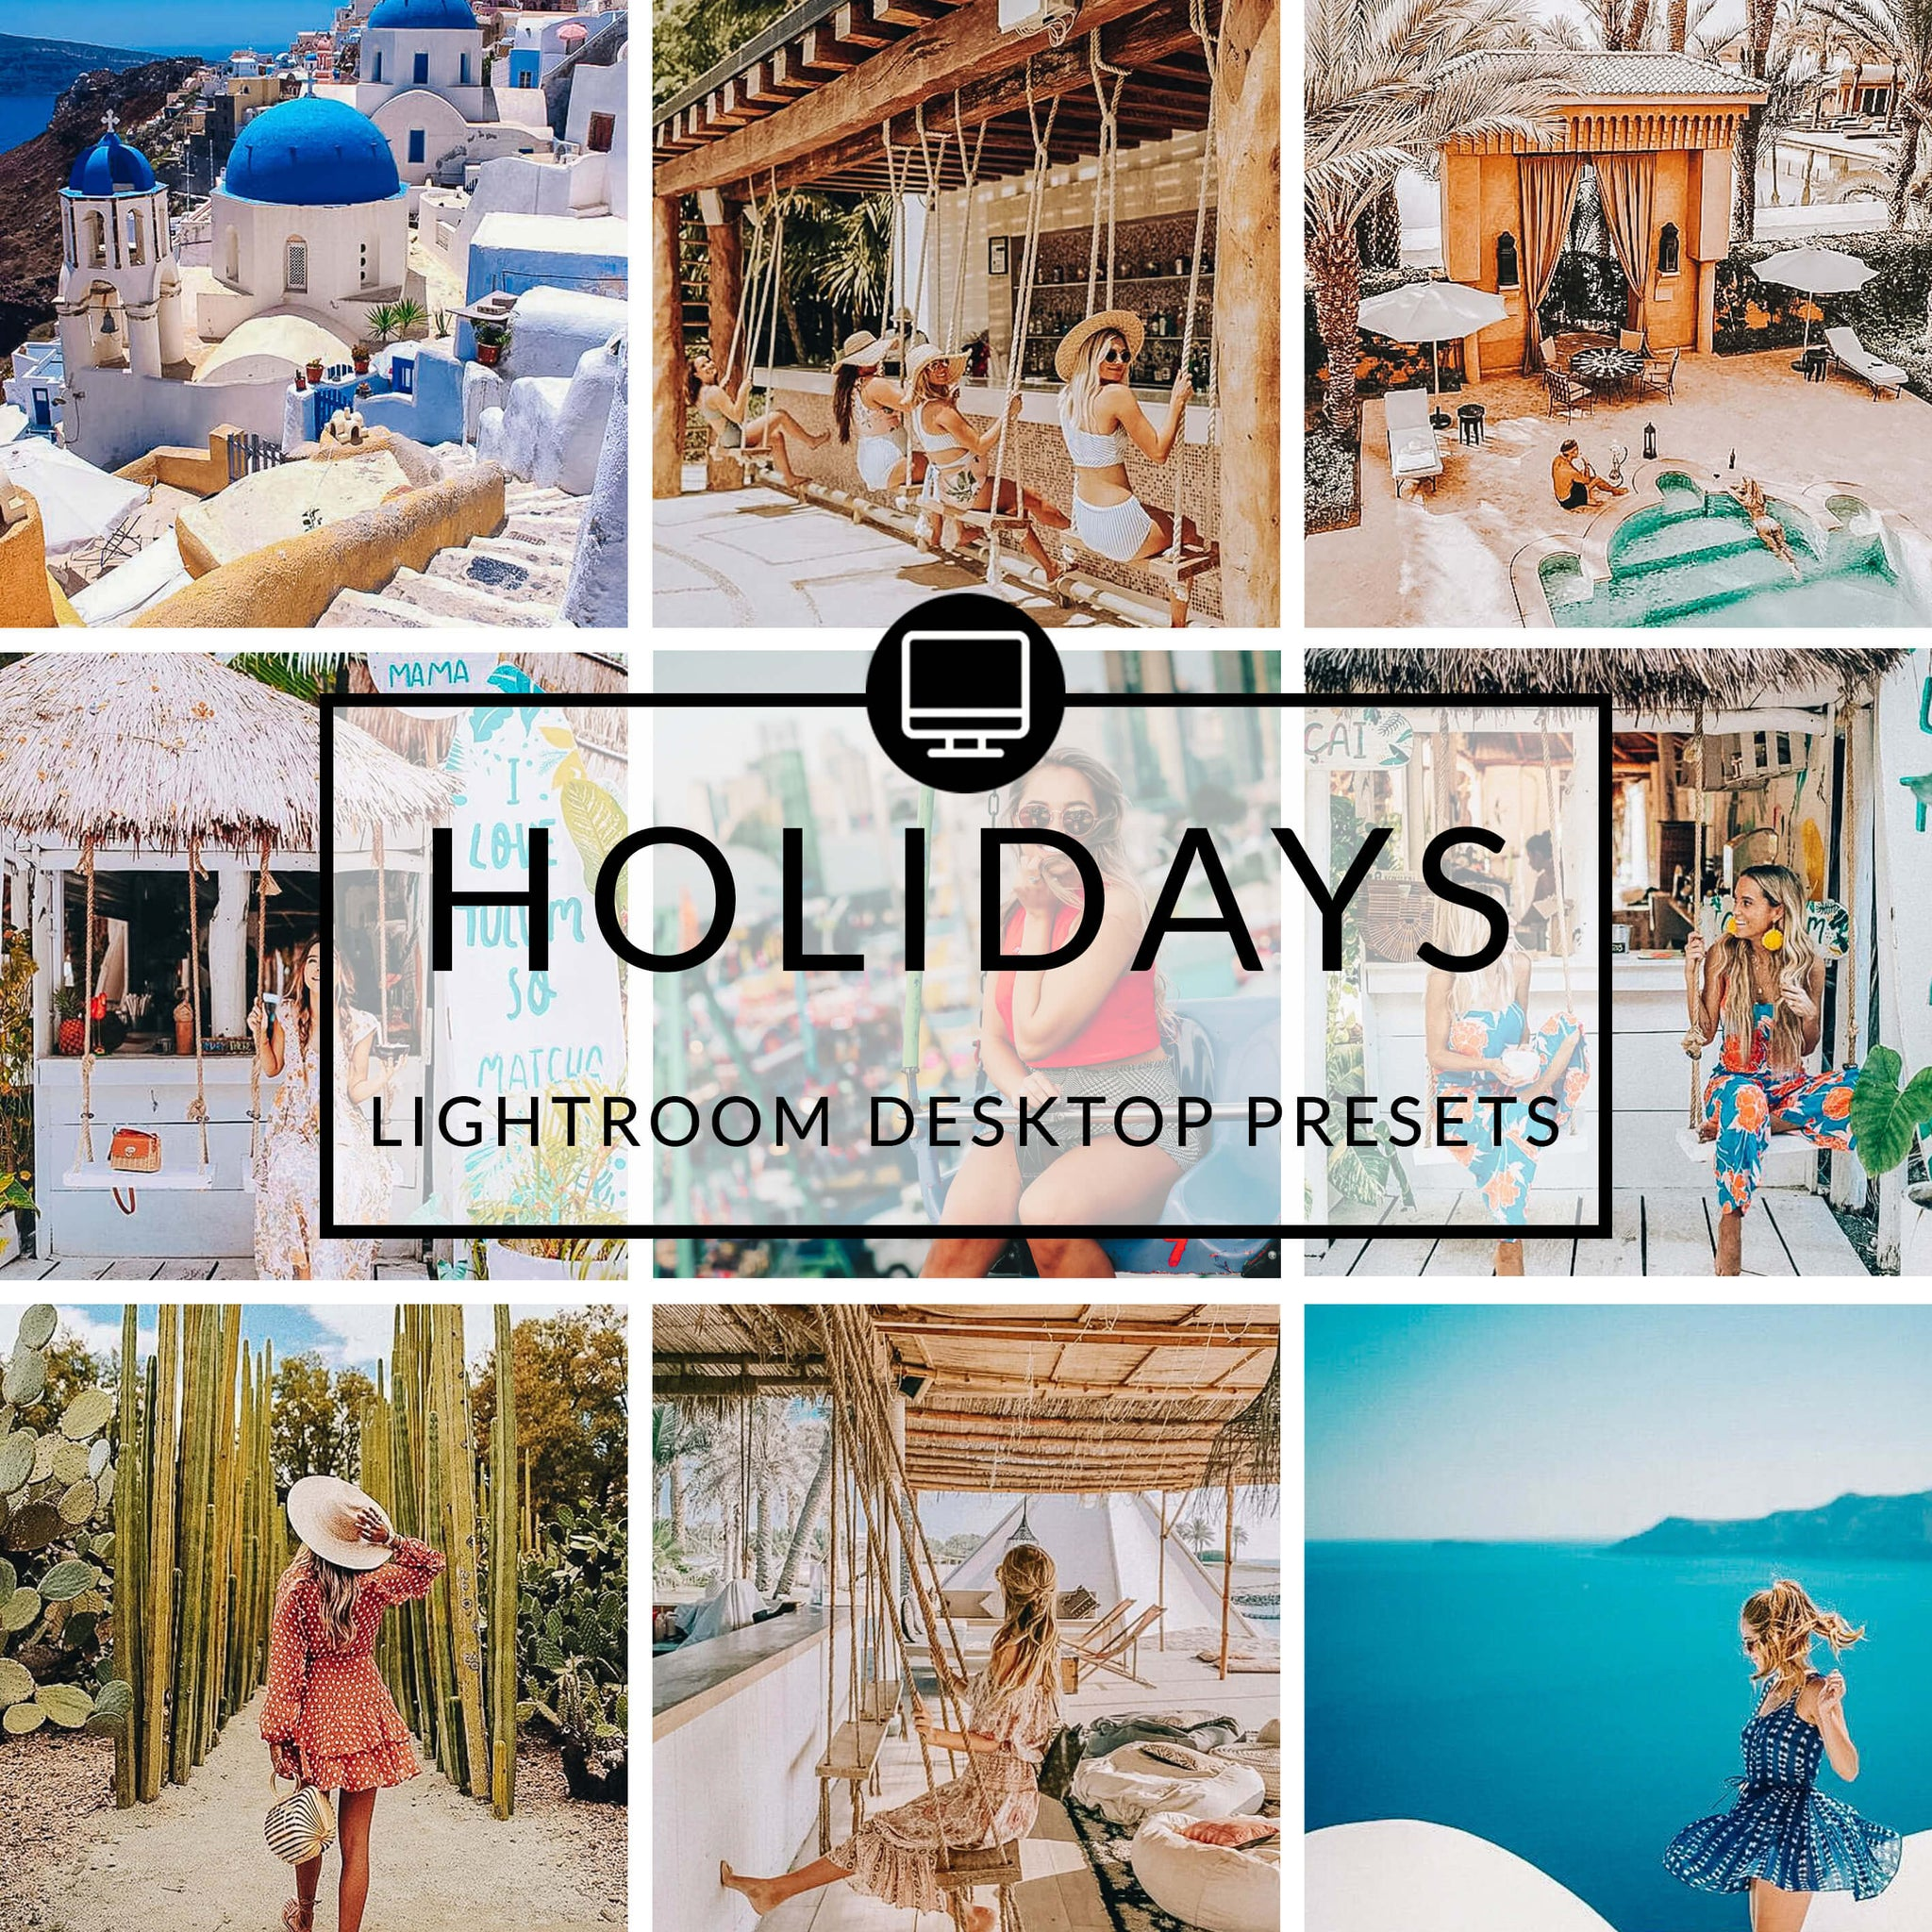 Holidays Lightroom Desktop Presets